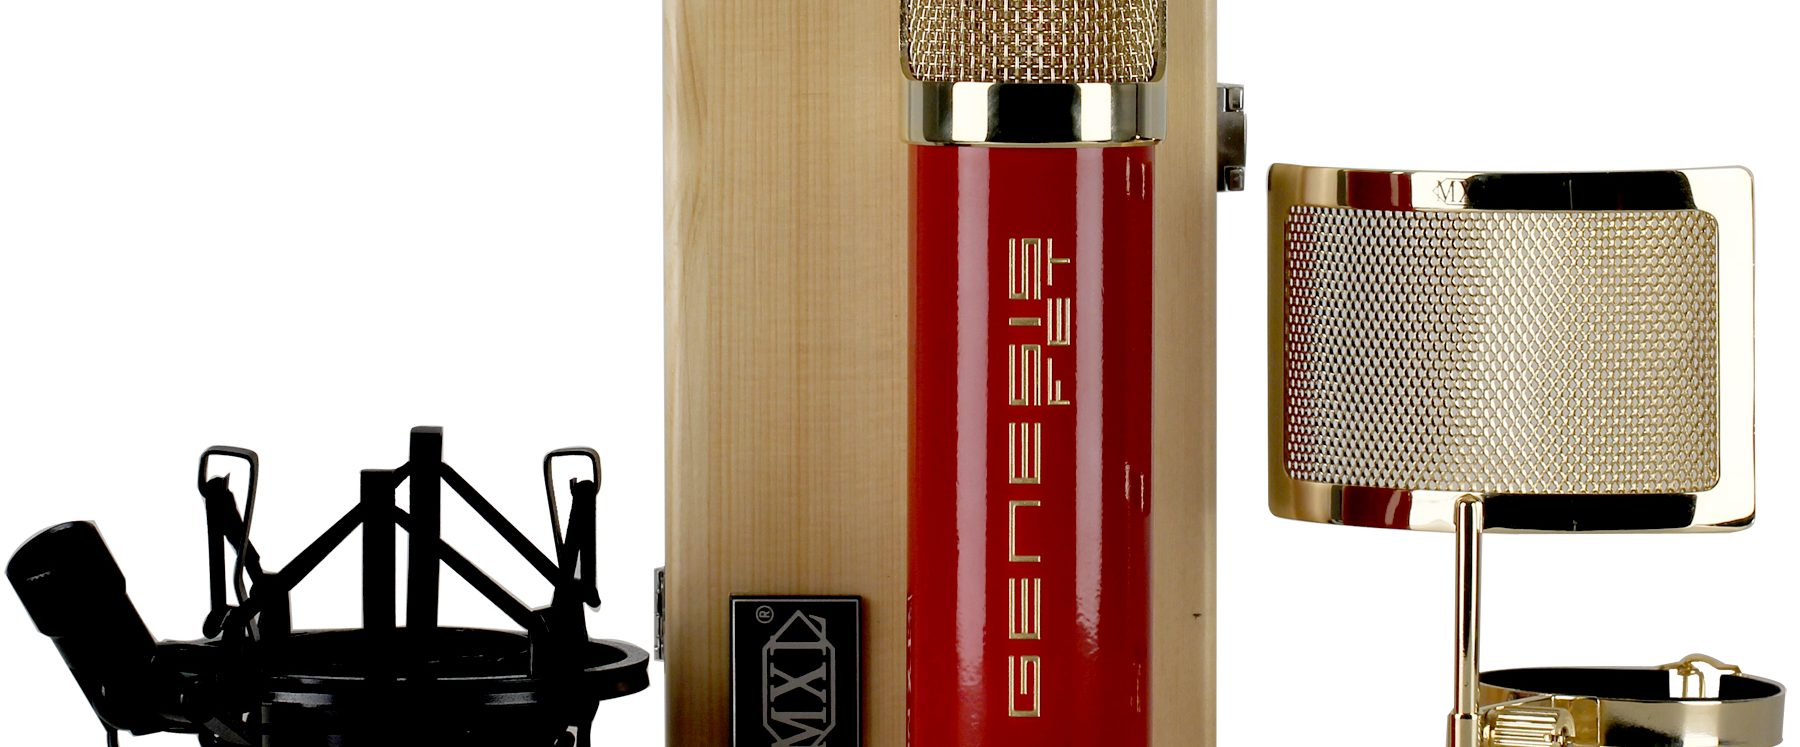 Enter to Win the MXL Genesis FET Studio Condenser Microphone